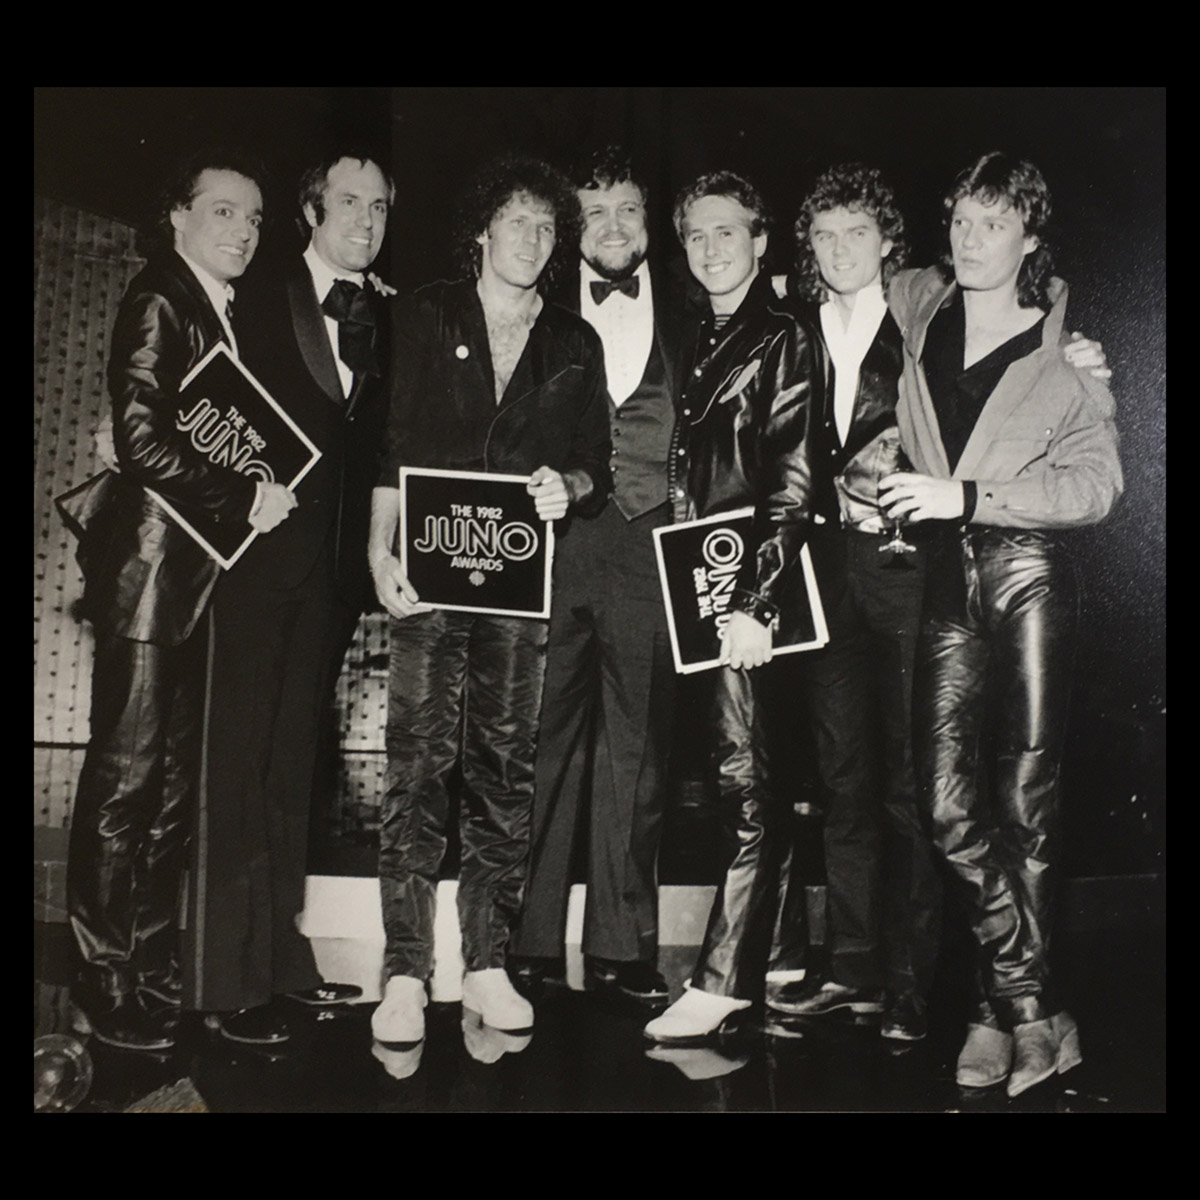 Here he is with us at the 1982 Junos – Left to right- Matt Frenette, Bruce Allen, Paul Dean, Lou Blair, Mike Reno, Doug Johnson and Scott Smith.